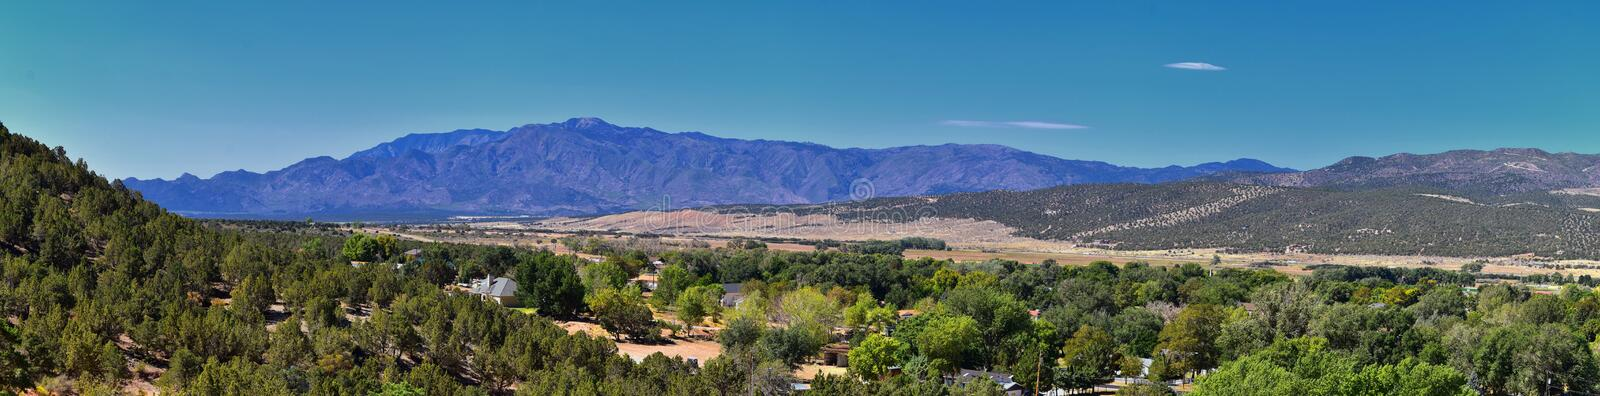 View of Kanarraville valley and mountain range from hiking trail to Waterfalls in Kanarra Creek Canyon by Zion National Park, Utah royalty free stock photos